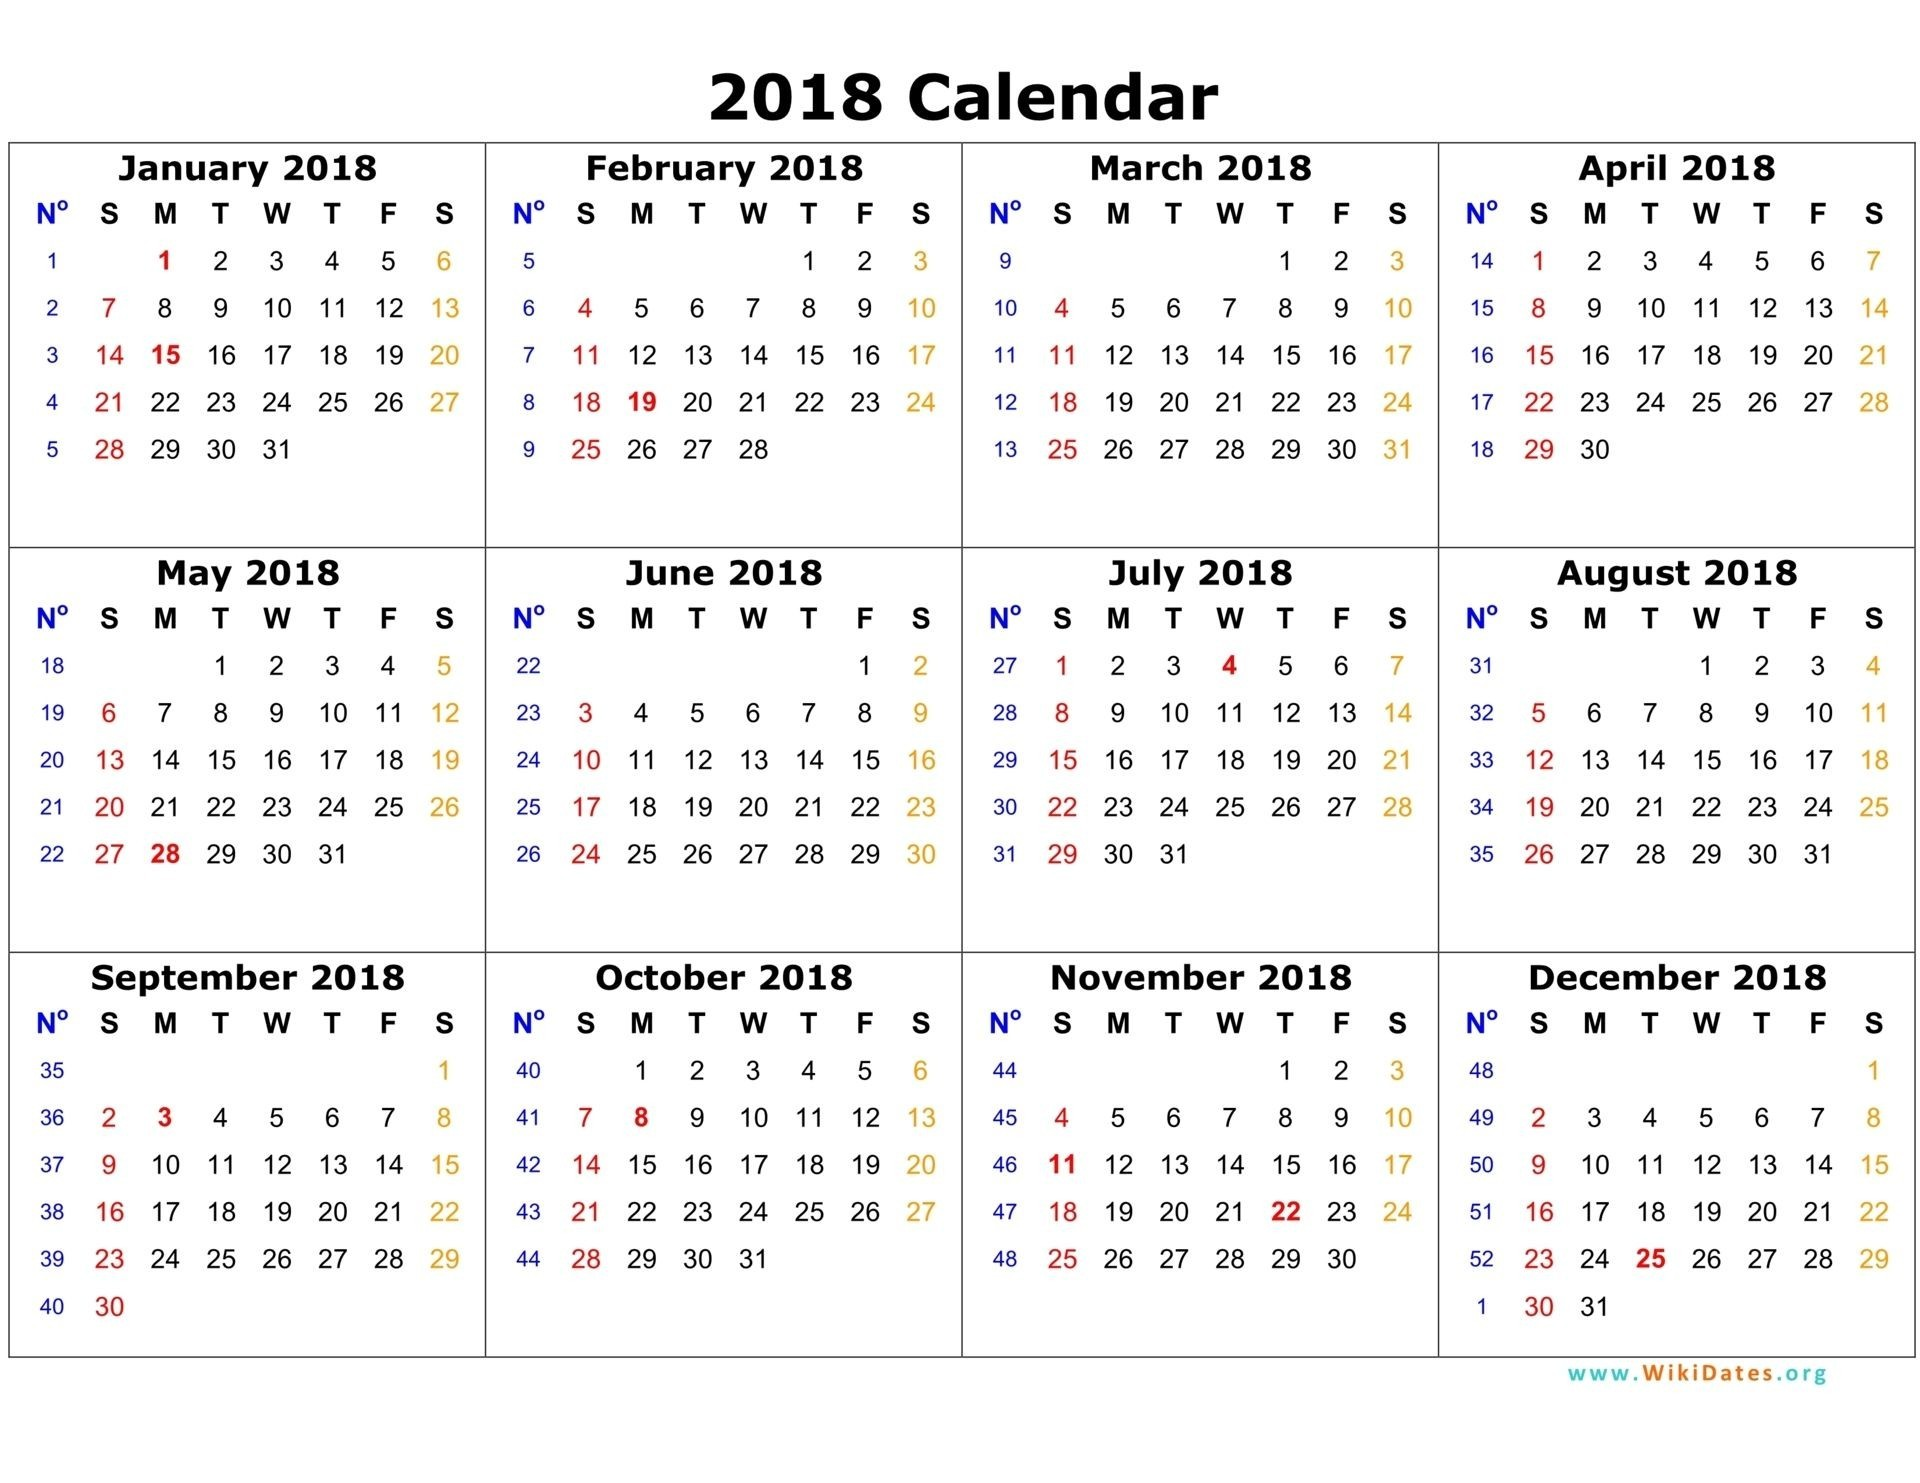 Where Can I Buy Mini Calendar Pages 2018 Printed for Free